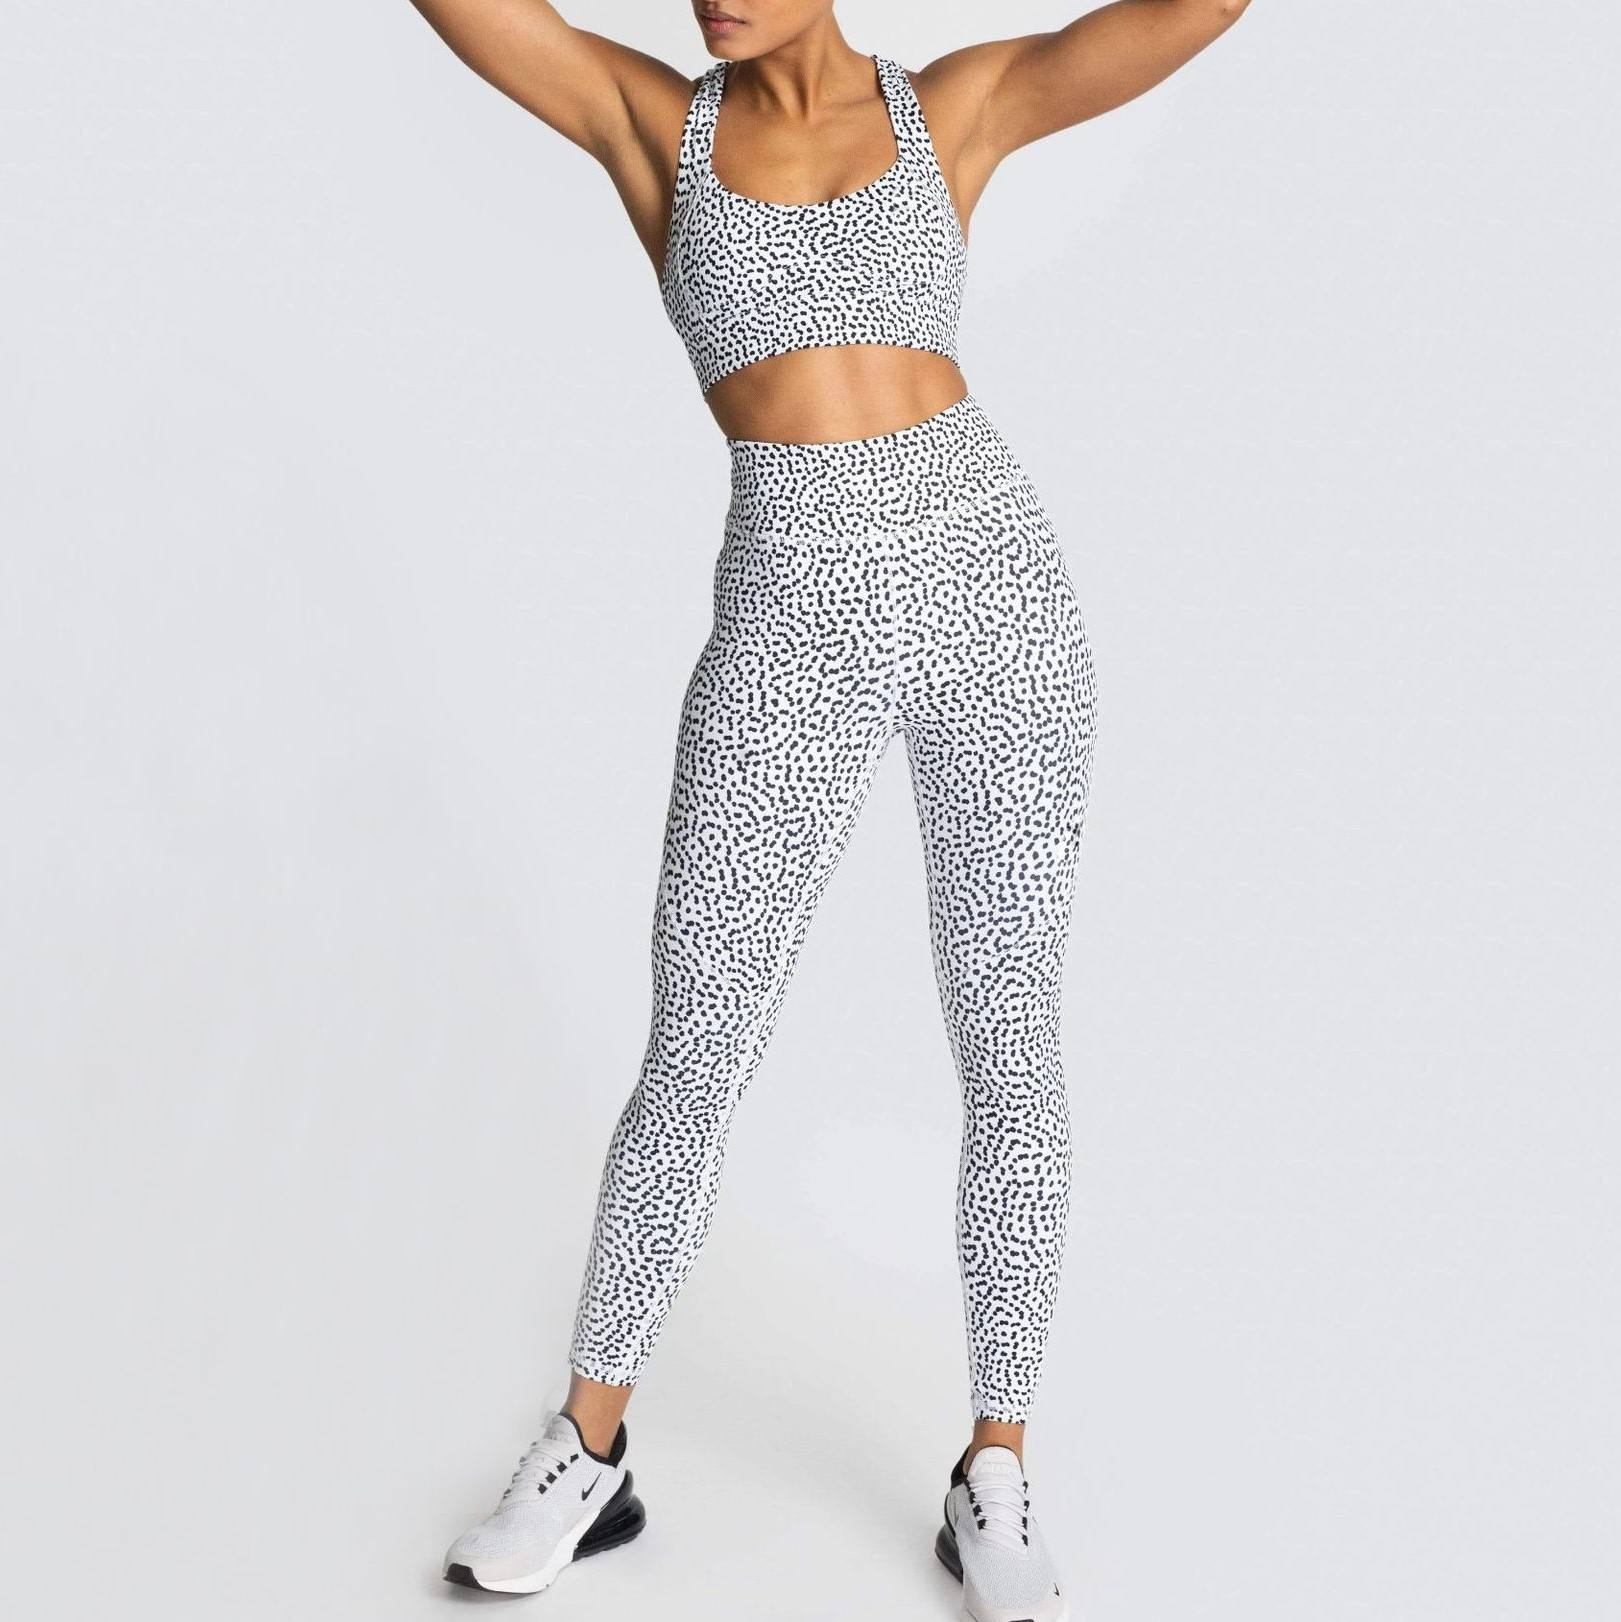 Newest style women print yoga suit legging sets athletic apparel manufacturers